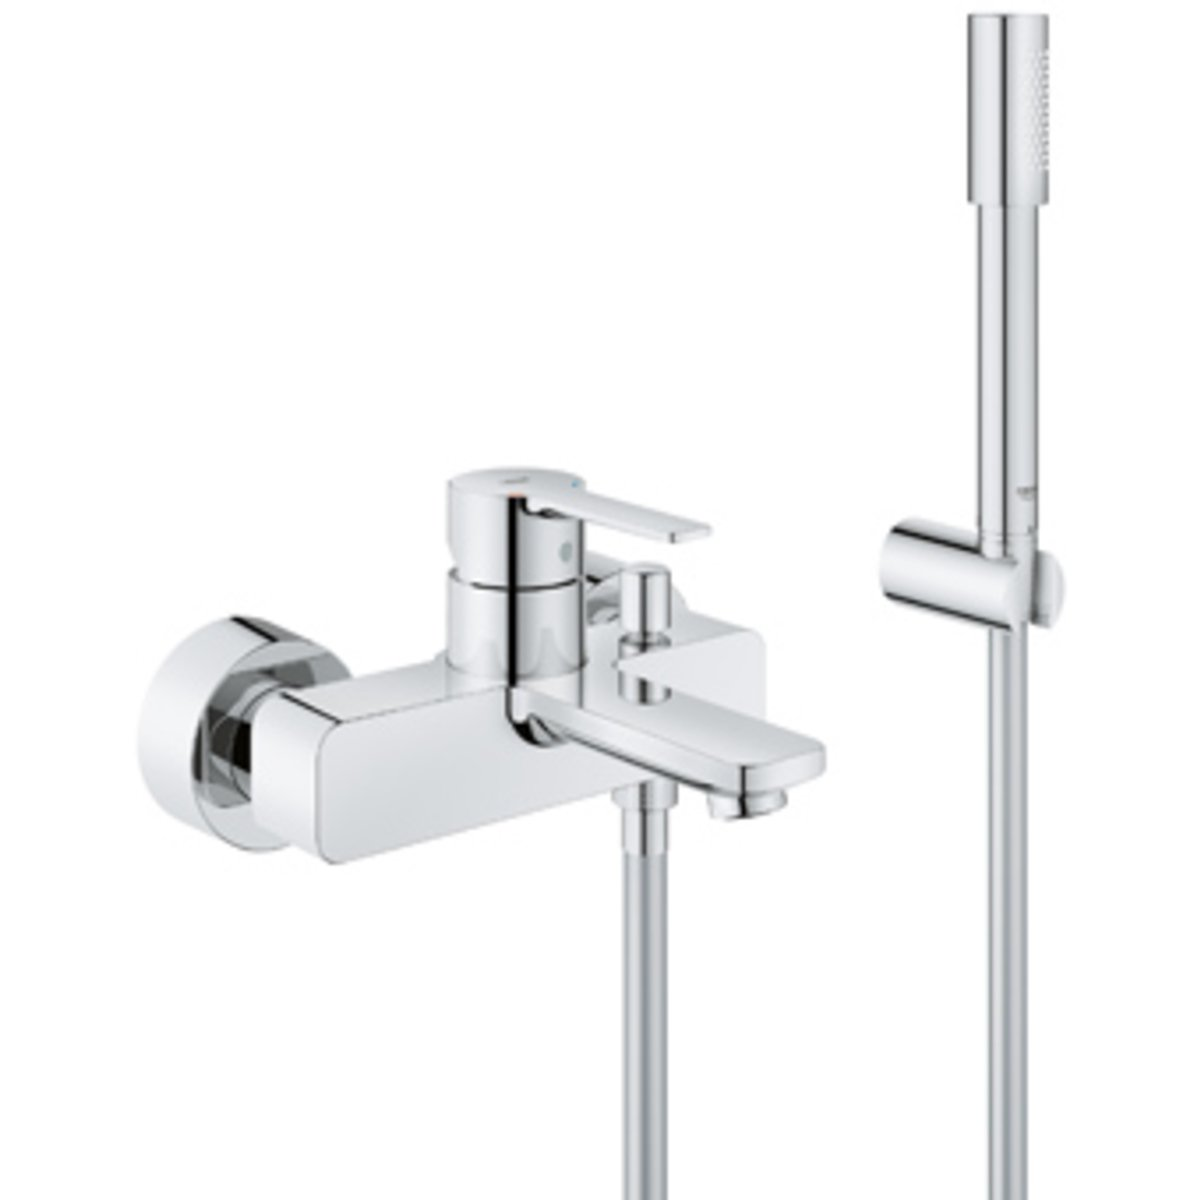 Grohe lineare new mitigeur bain mural avec inverseur et for Mitigeur mural grohe